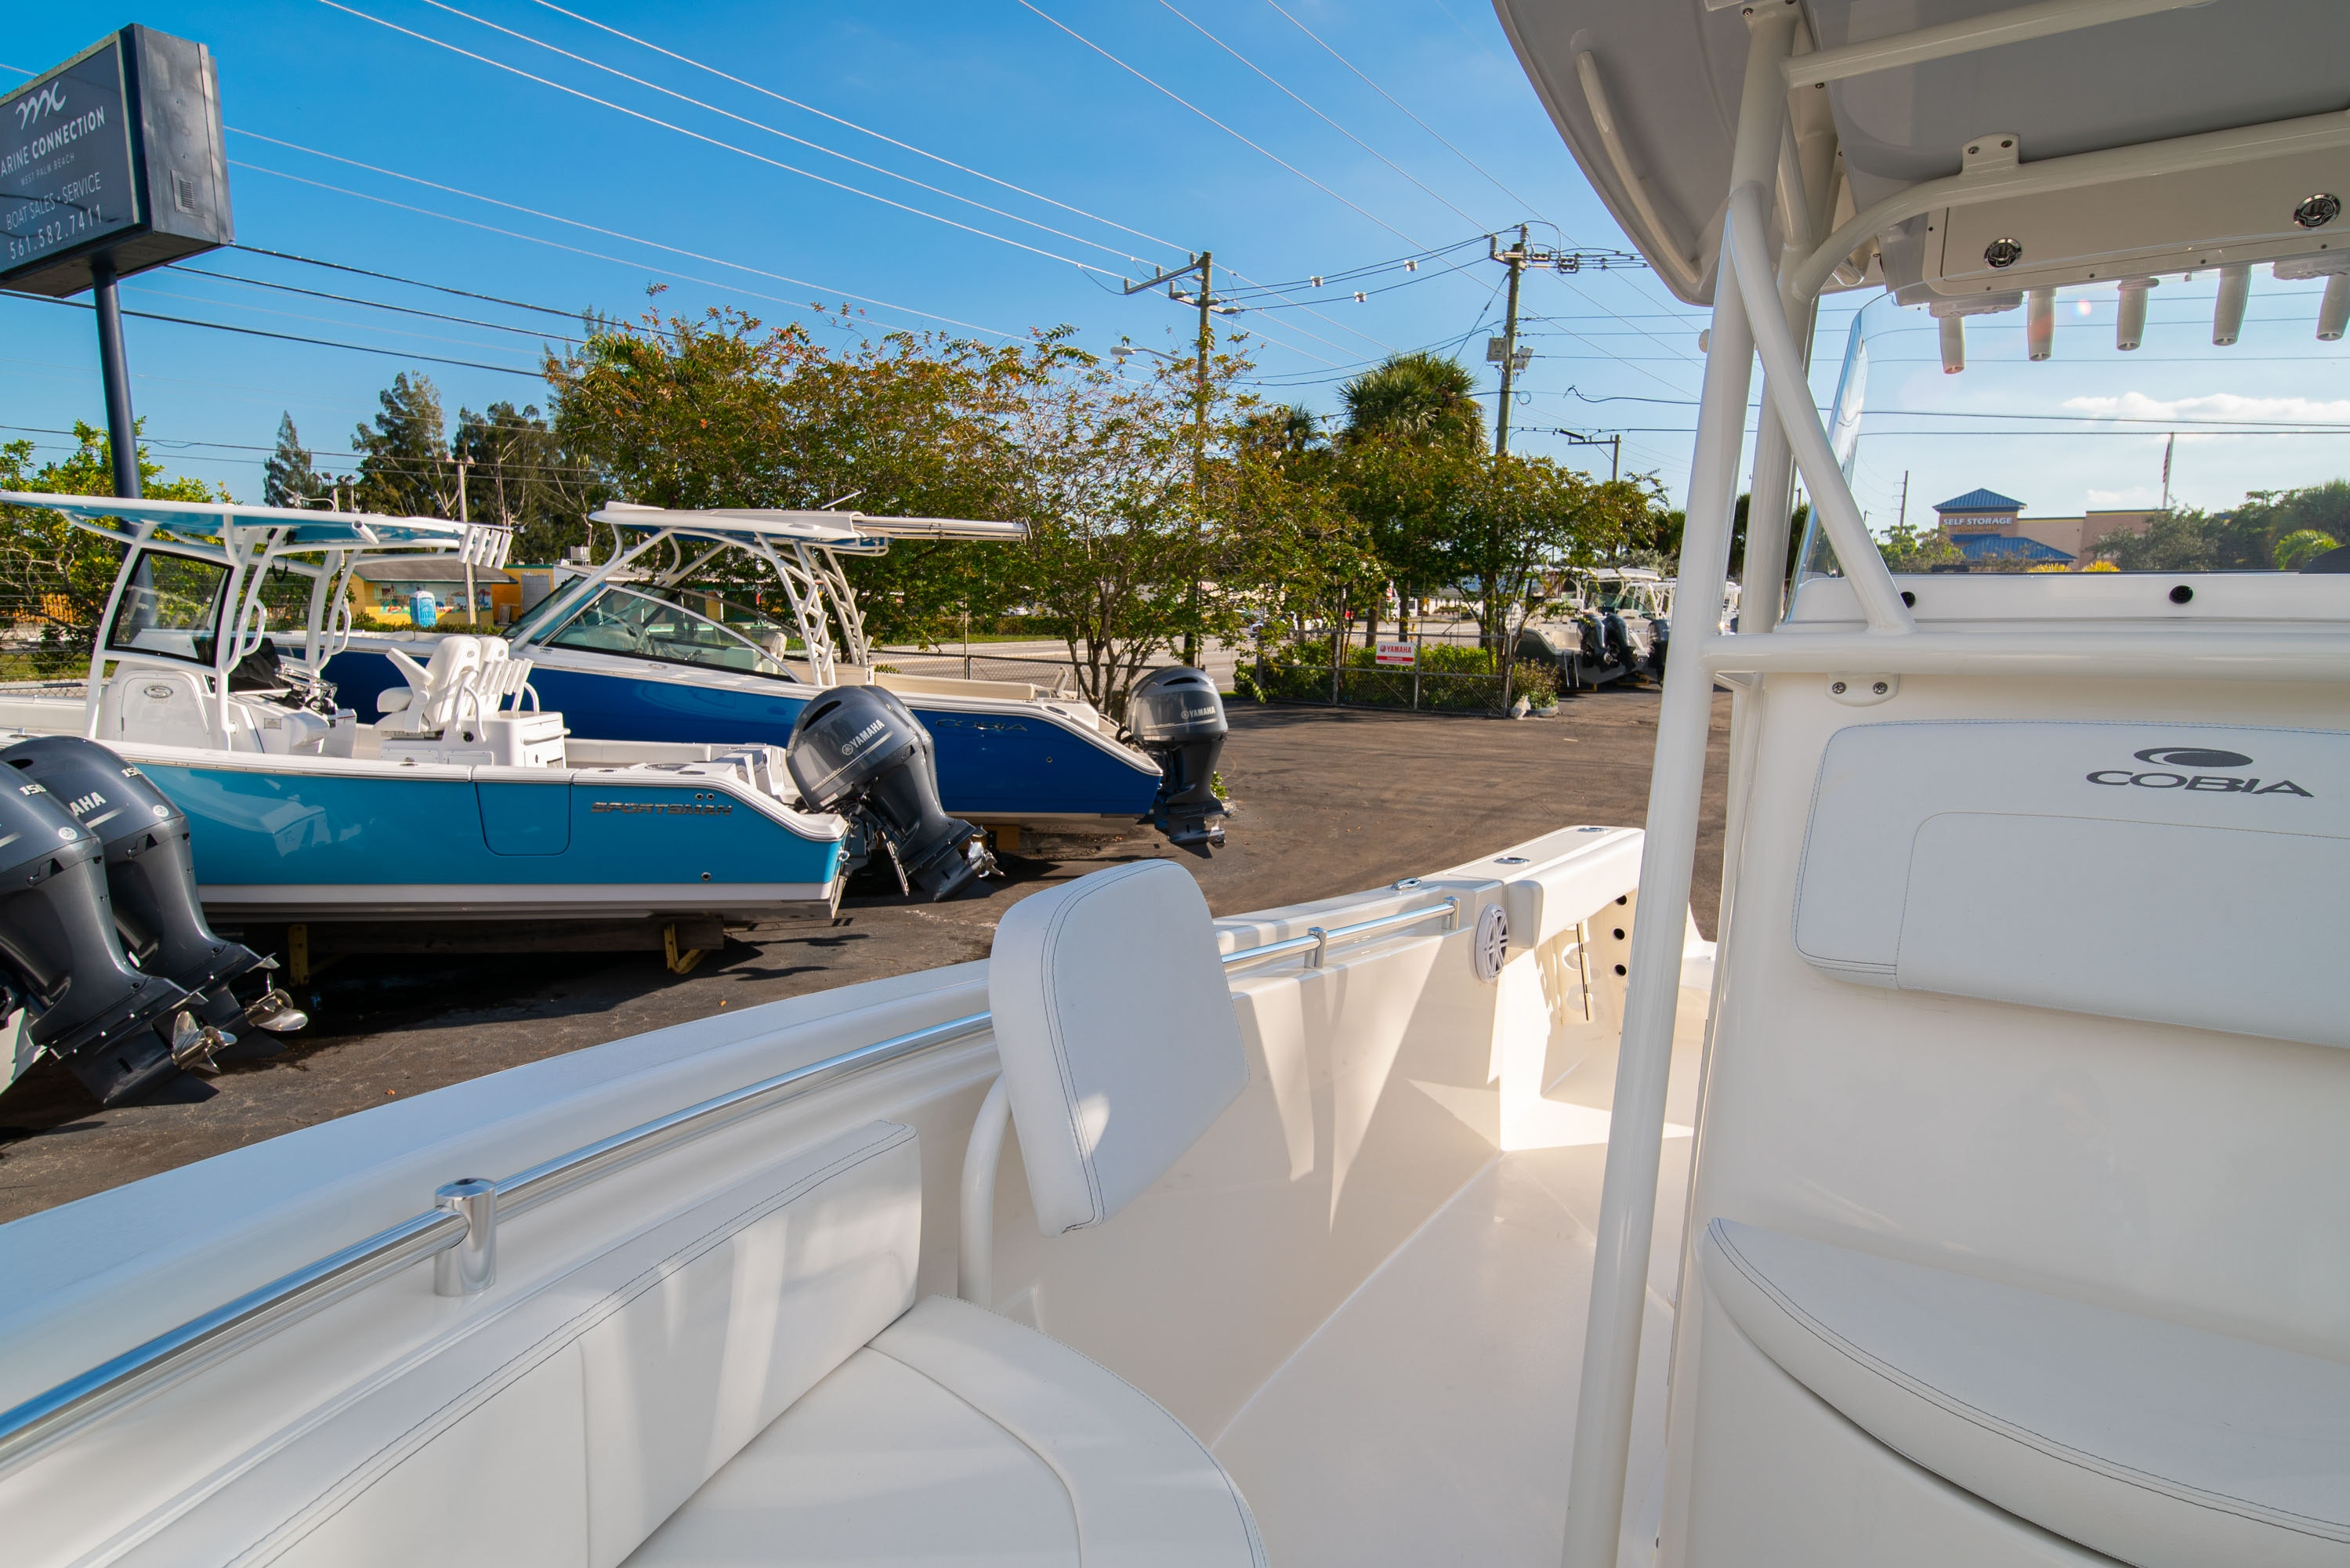 Thumbnail 39 for New 2020 Cobia 220 CC boat for sale in West Palm Beach, FL